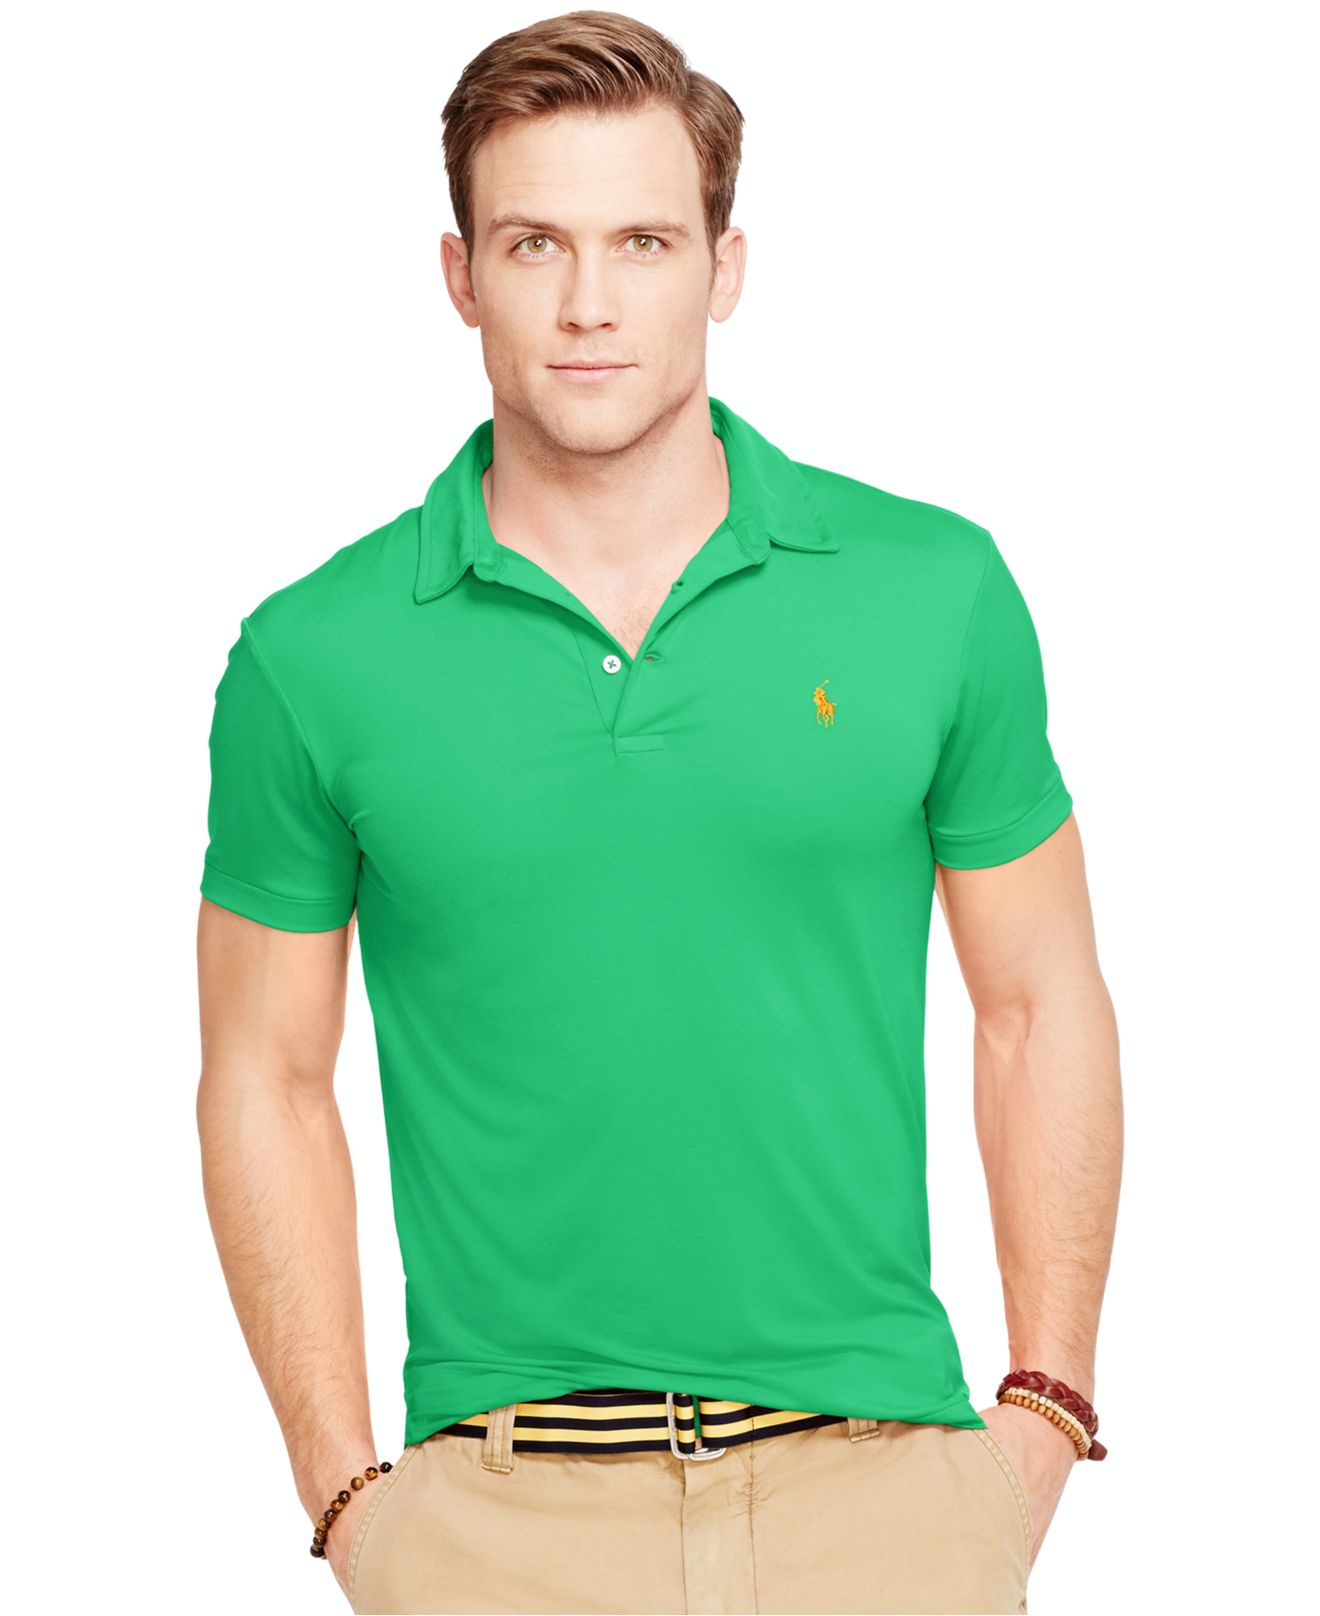 Polo ralph lauren performance jersey polo shirt in green Man in polo shirt